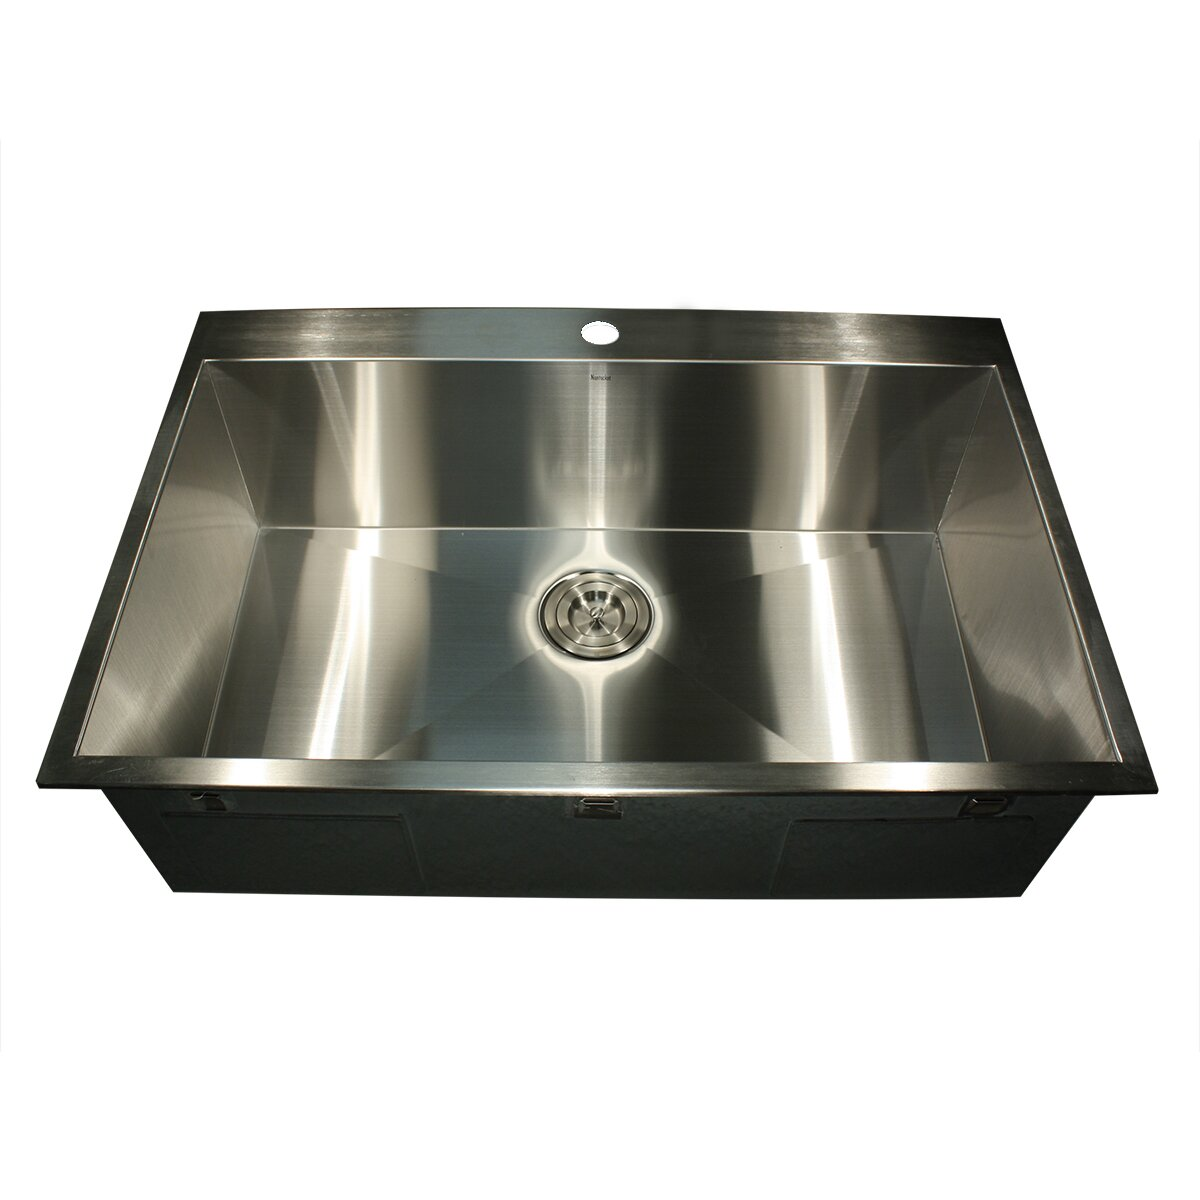 Best Rated Stainless Steel Sinks : ... Single Hole Topmount Stainless Steel Kitchen Sink by Nantucket Sinks